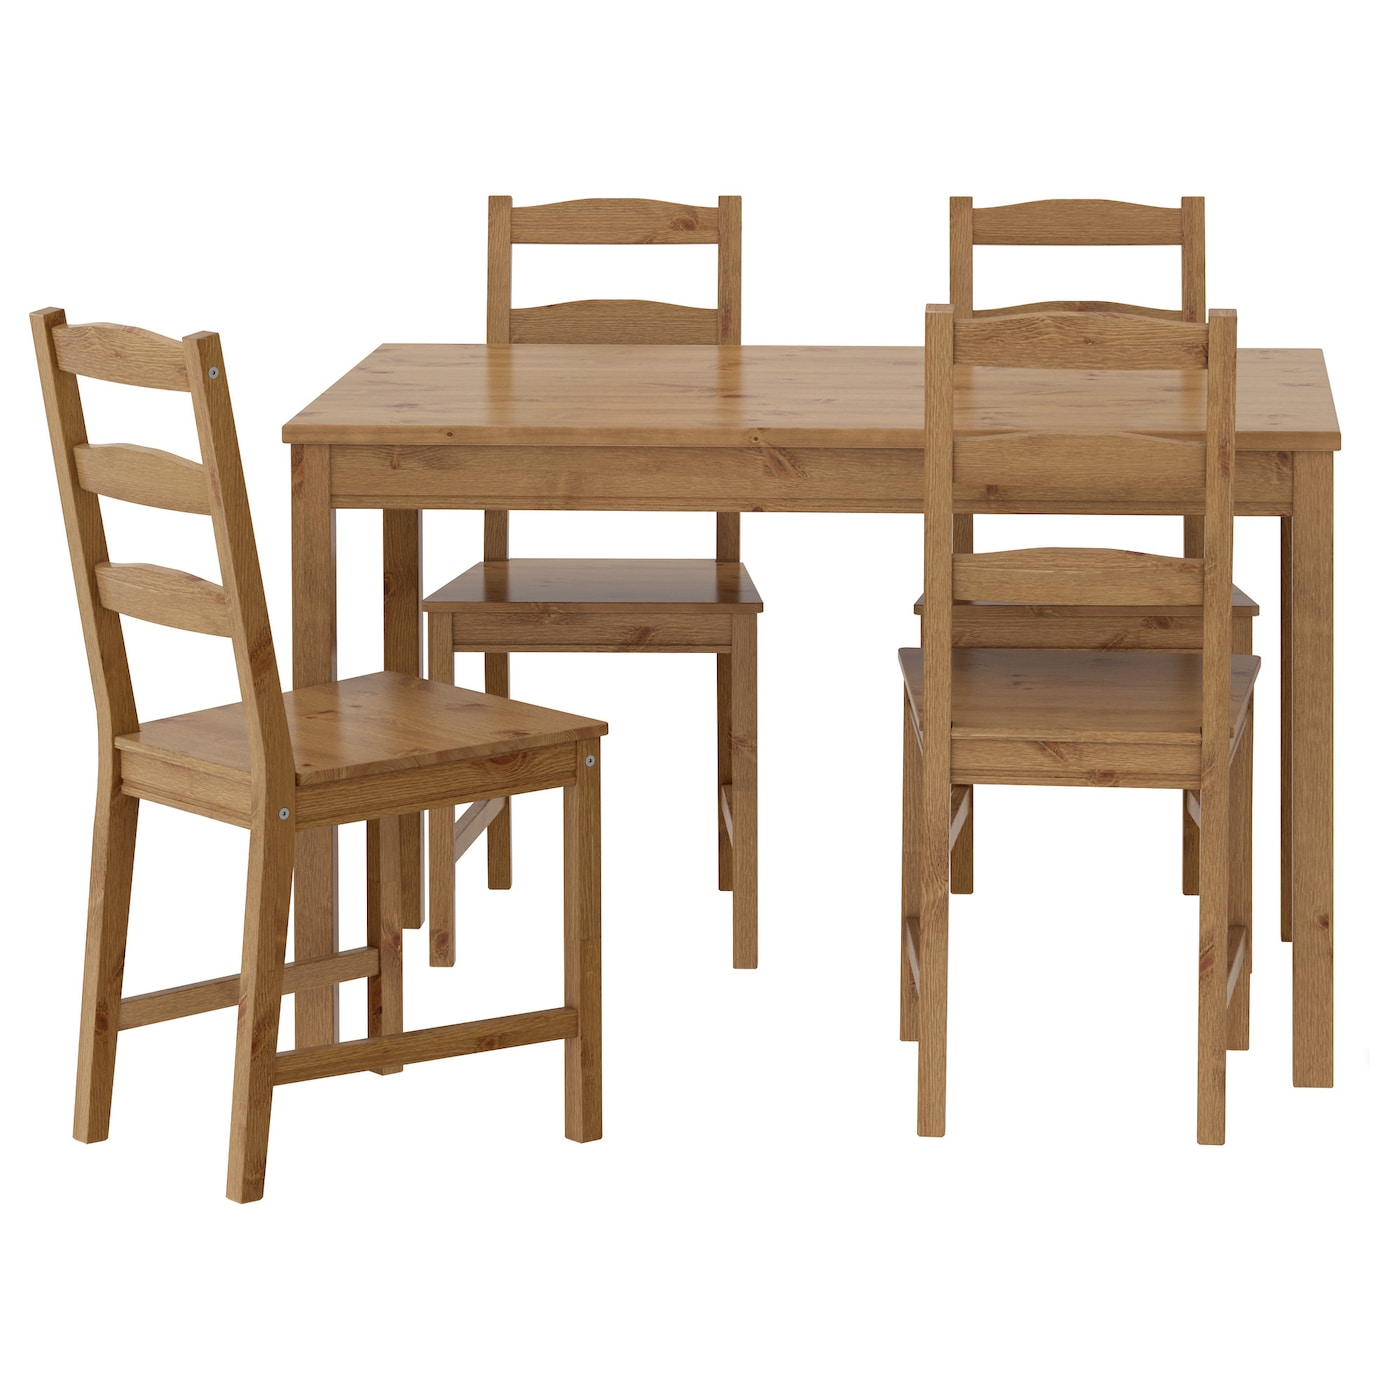 IKEA JOKKMOKK Table And 4 Chairs Solid Pine; A Natural Material That Ages  Beautifully.